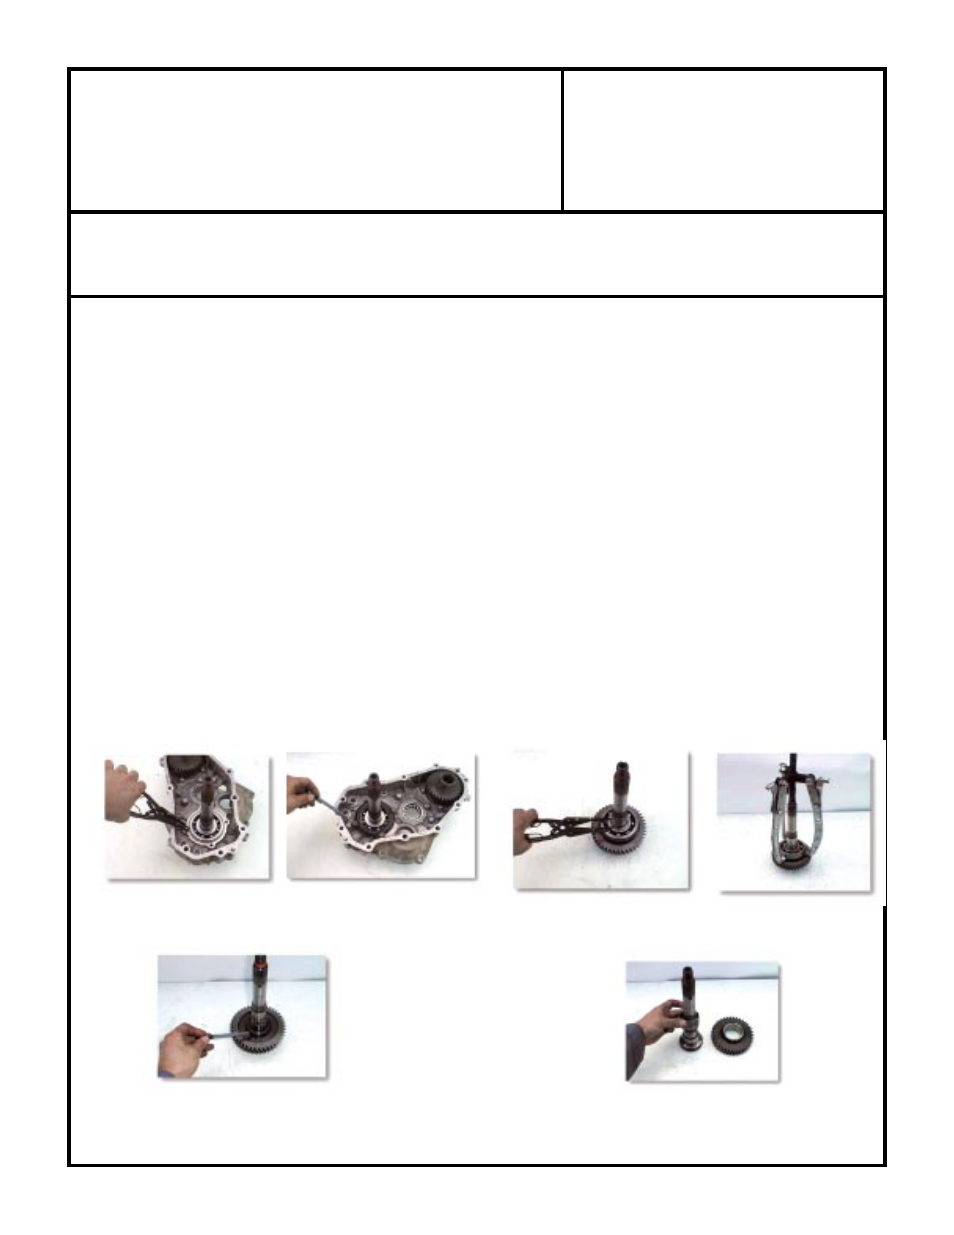 Advance Adapters 50-5915 User Manual | 3 pages